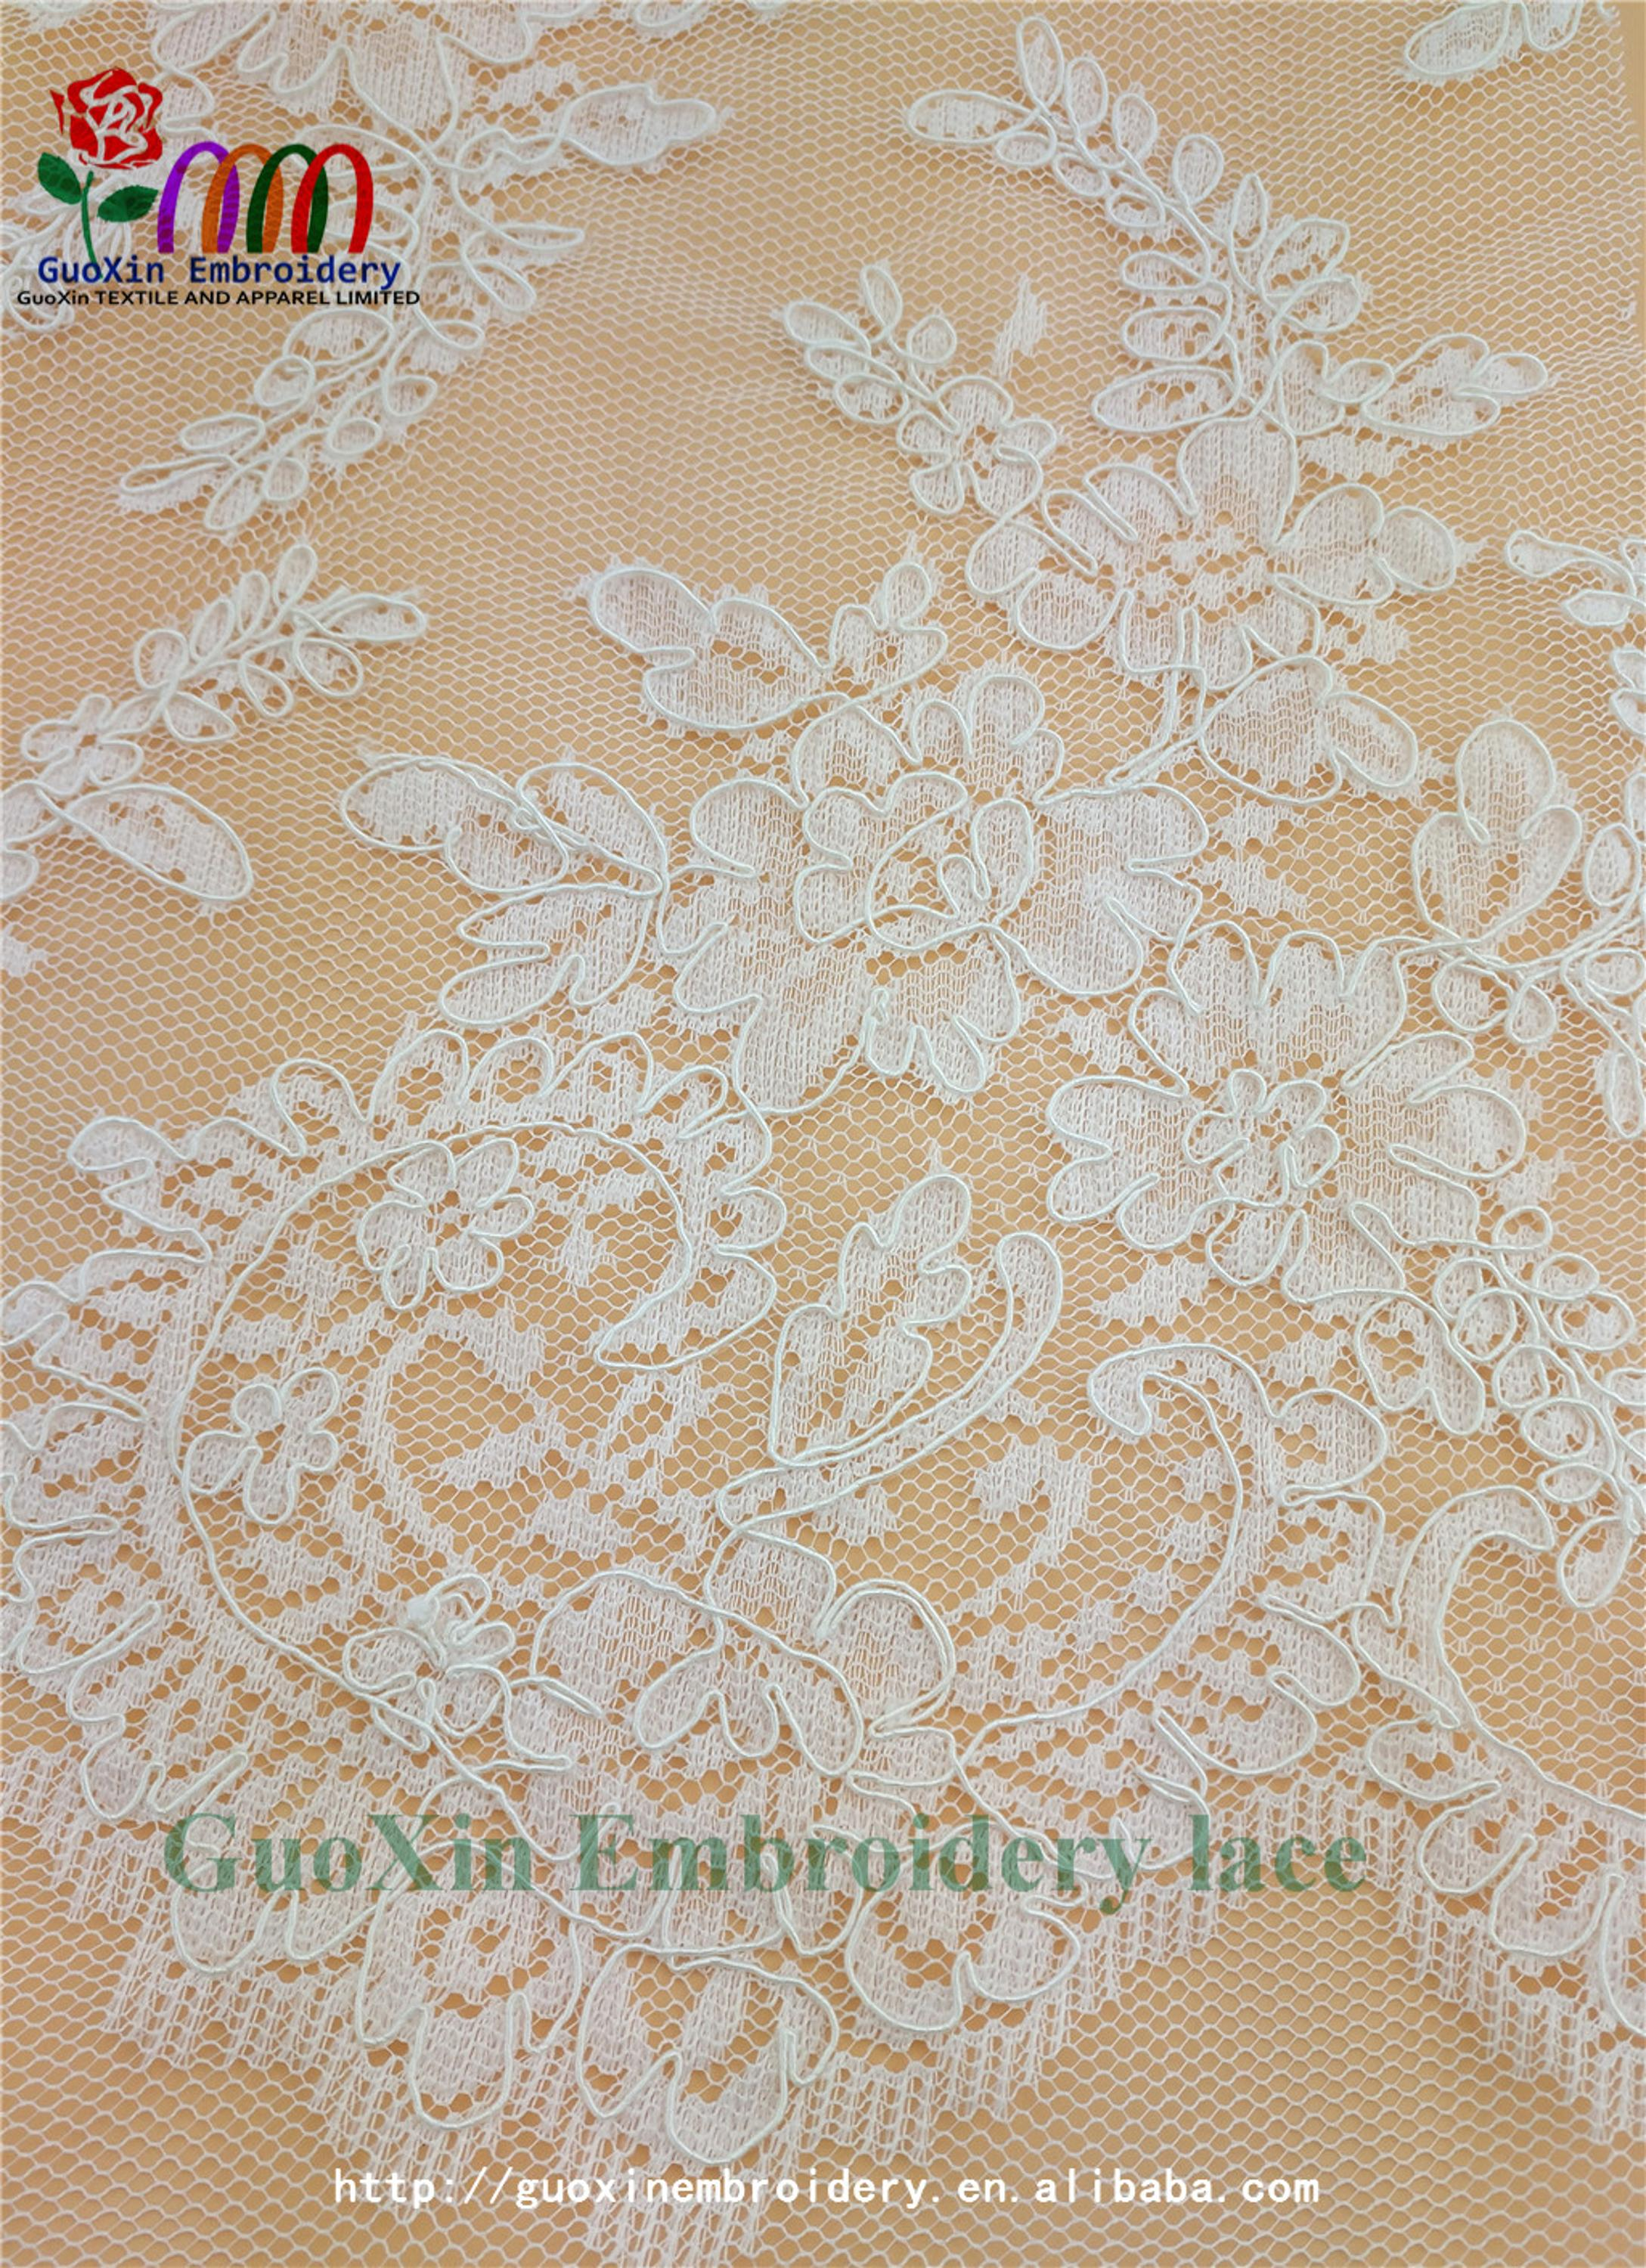 high quality designer bridal sarees image lace embroidery lace fabric with cording (6).jpg